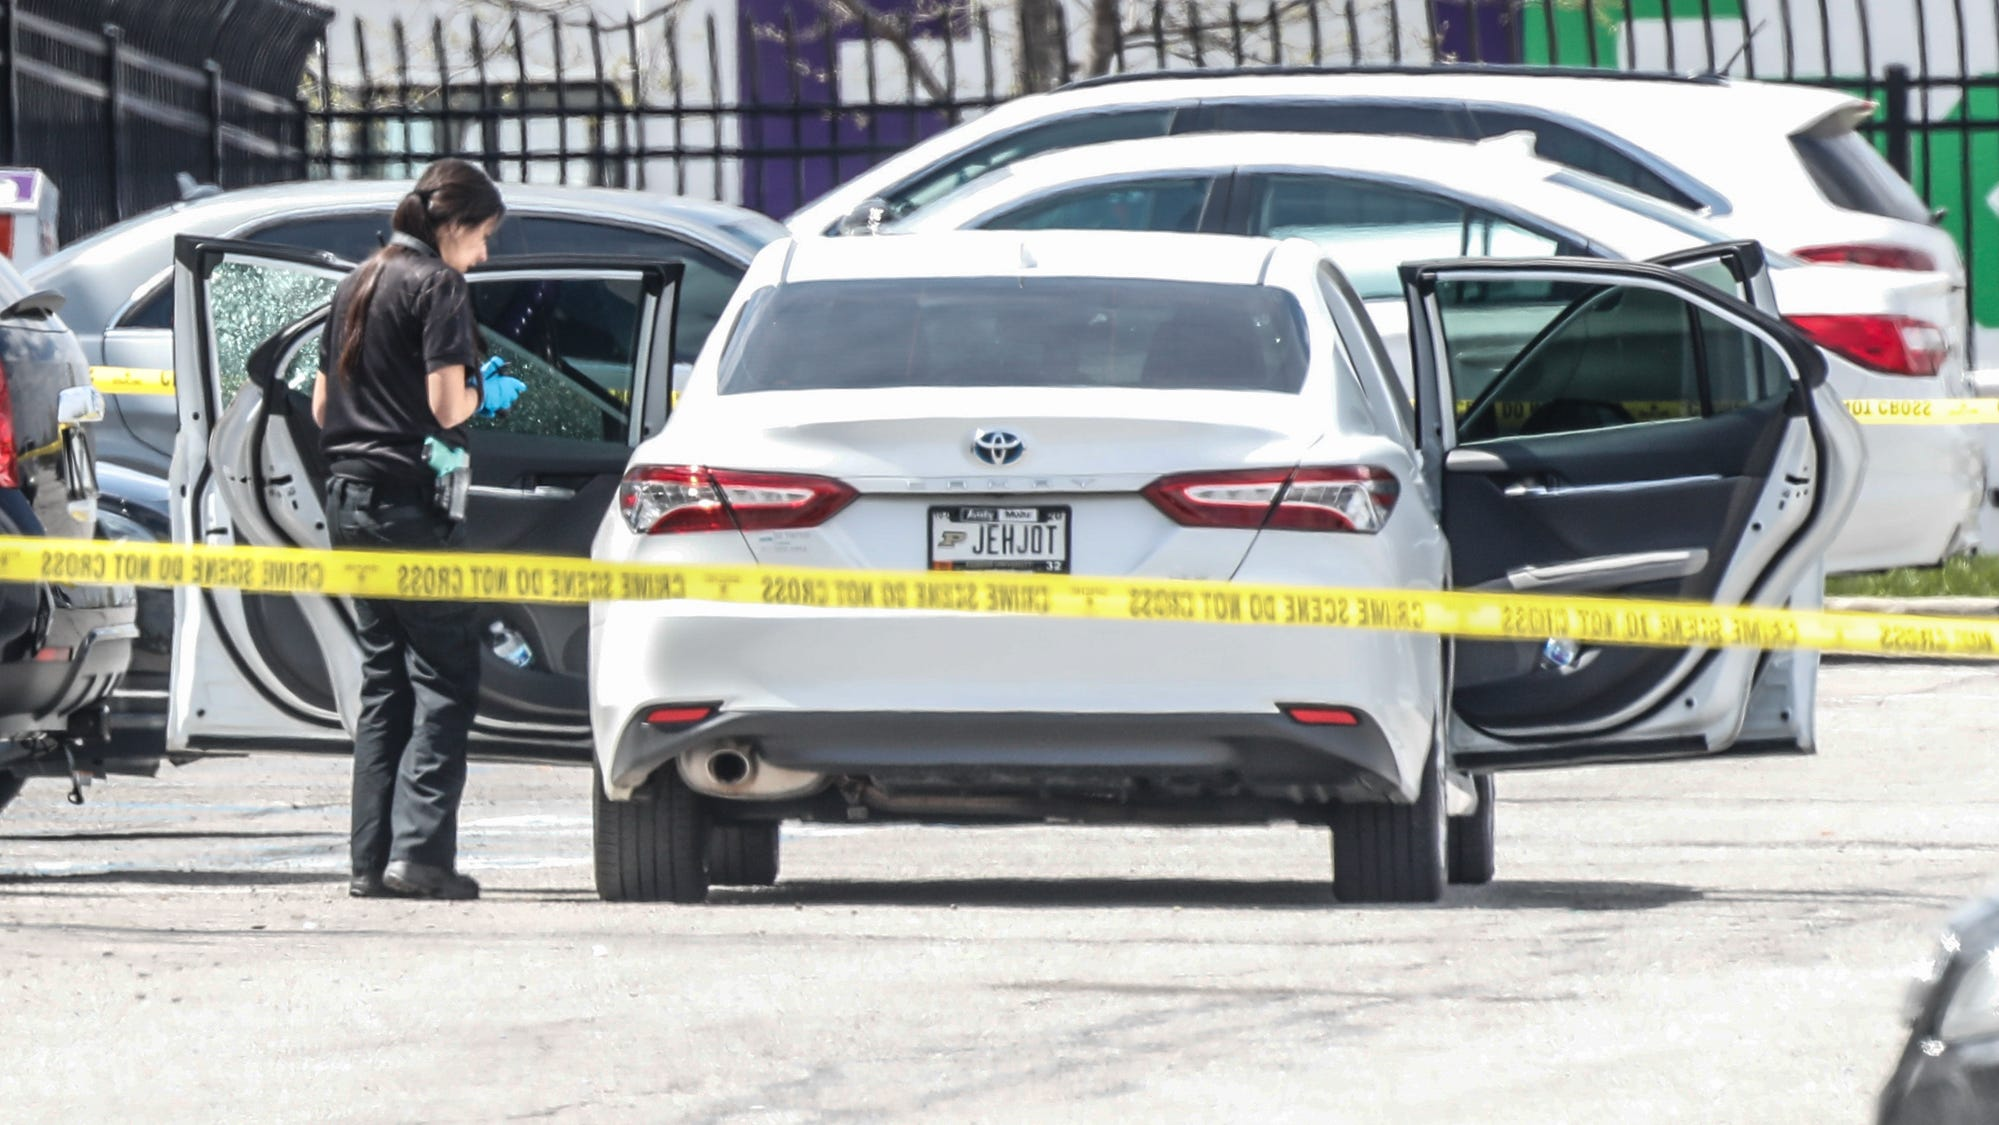 Mass shooting at Indianapolis FedEx is city's deadliest in 15 years